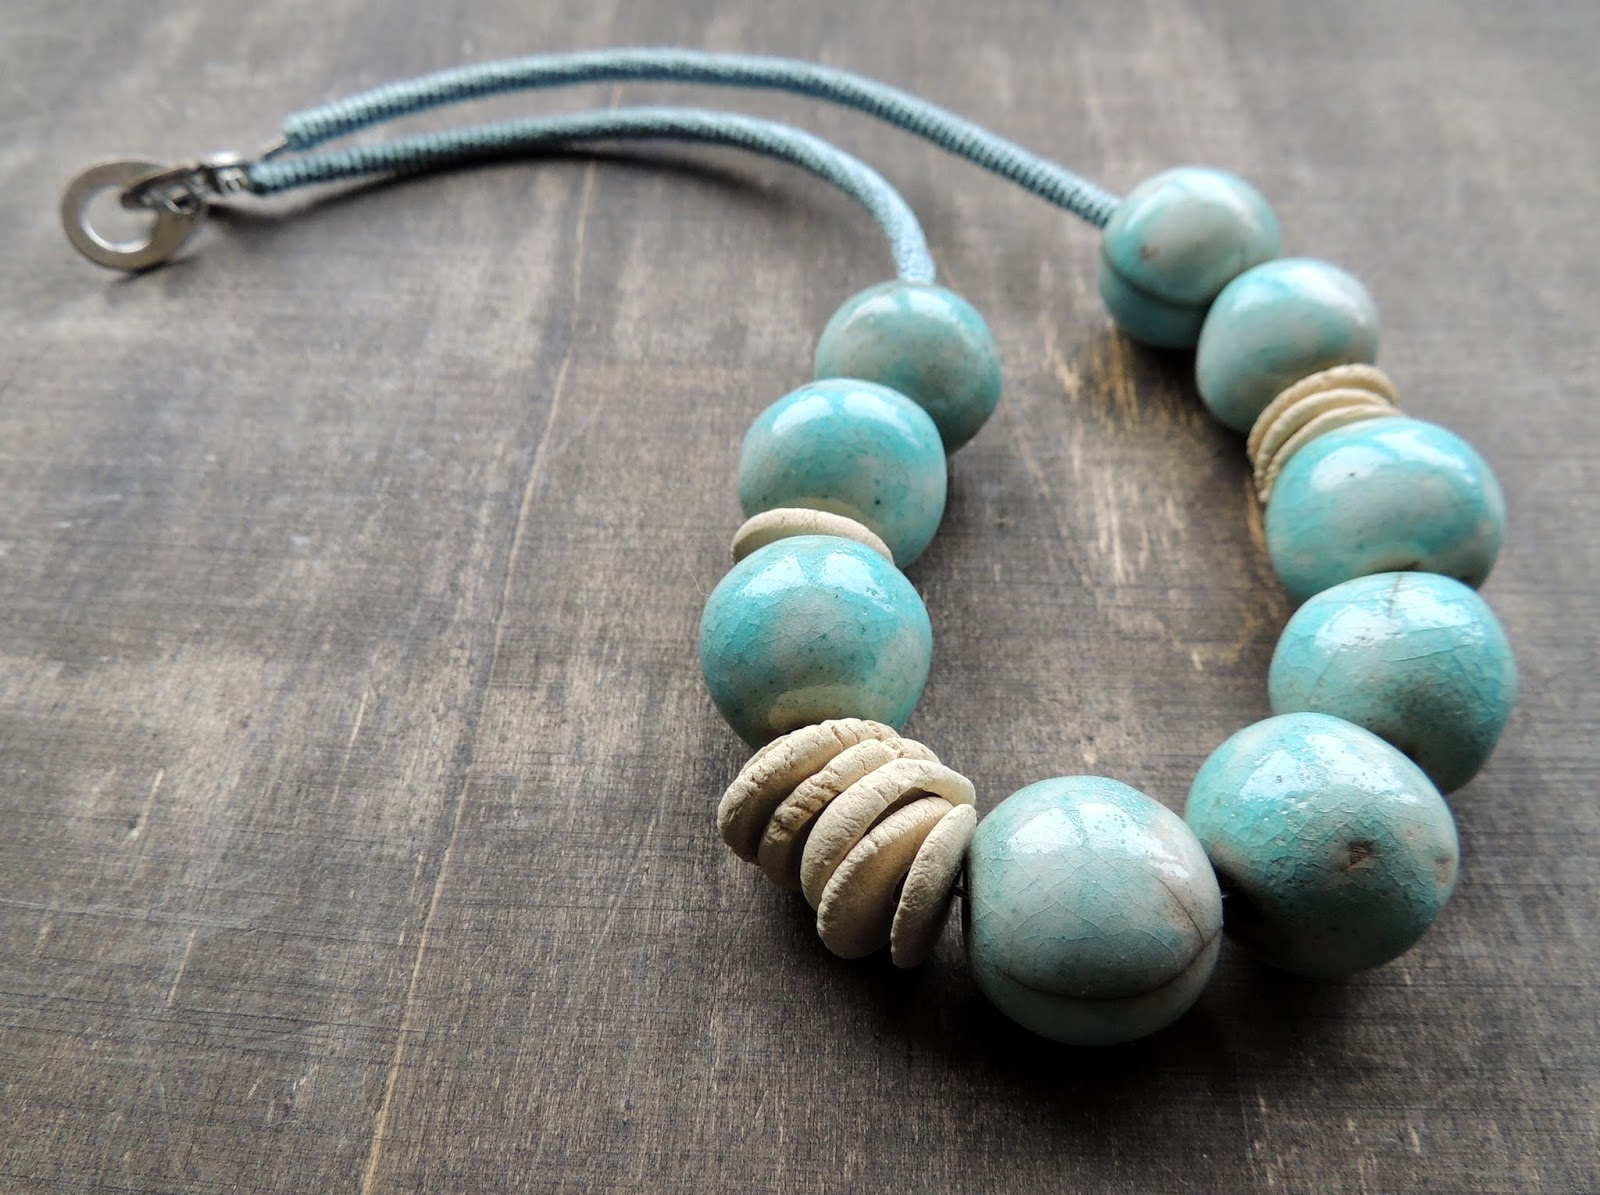 https://www.etsy.com/nl/listing/182833742/soft-blue-handmade-ceramic-beads-mixed?ref=shop_home_active_1